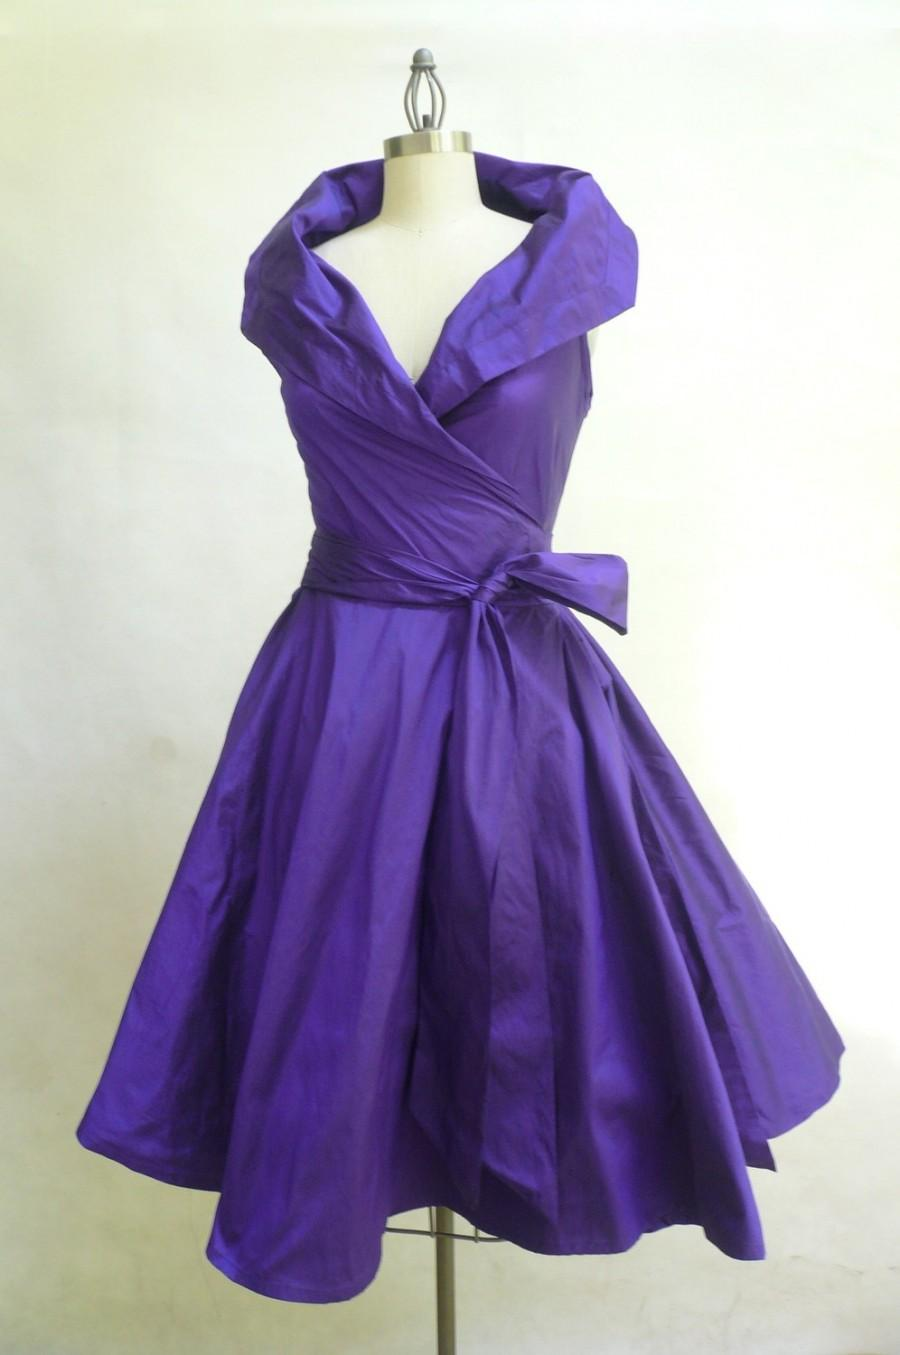 Custom Made MARIA SEVERYNA Wrap Full Skirt Dress Vintage 1950s Style ...